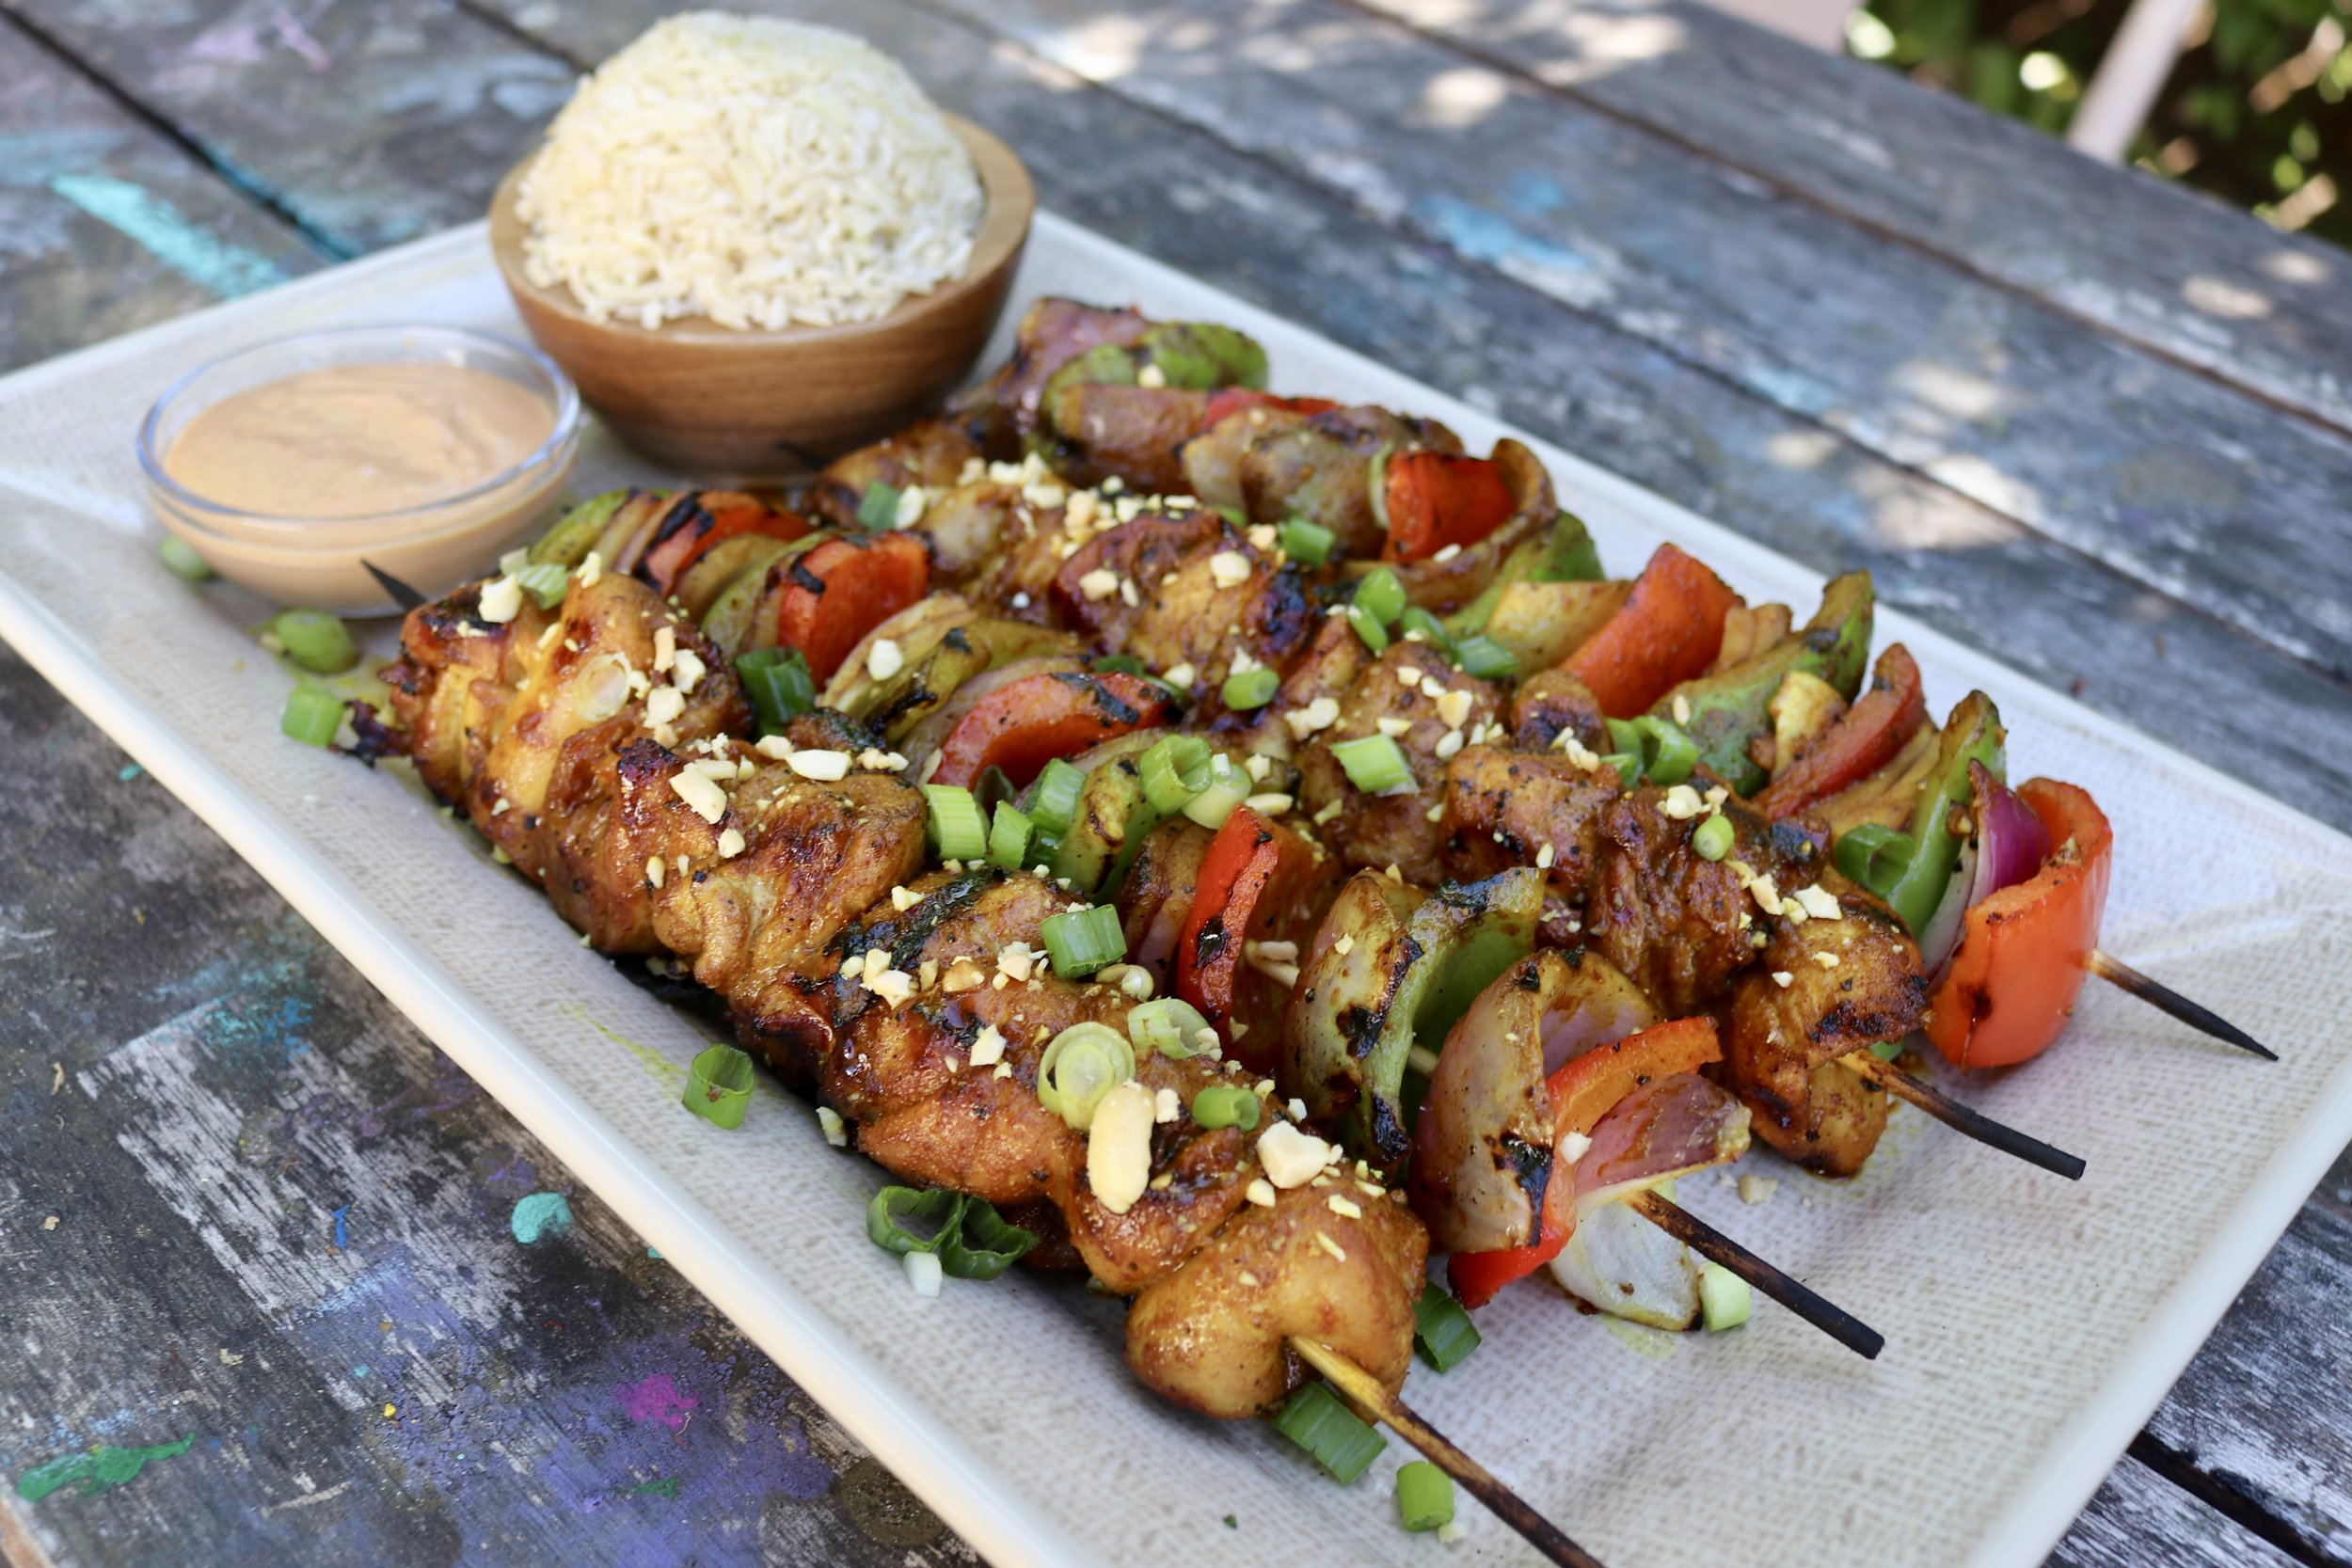 Thai Chicken and Veggie Skewers With Peanut Sauce